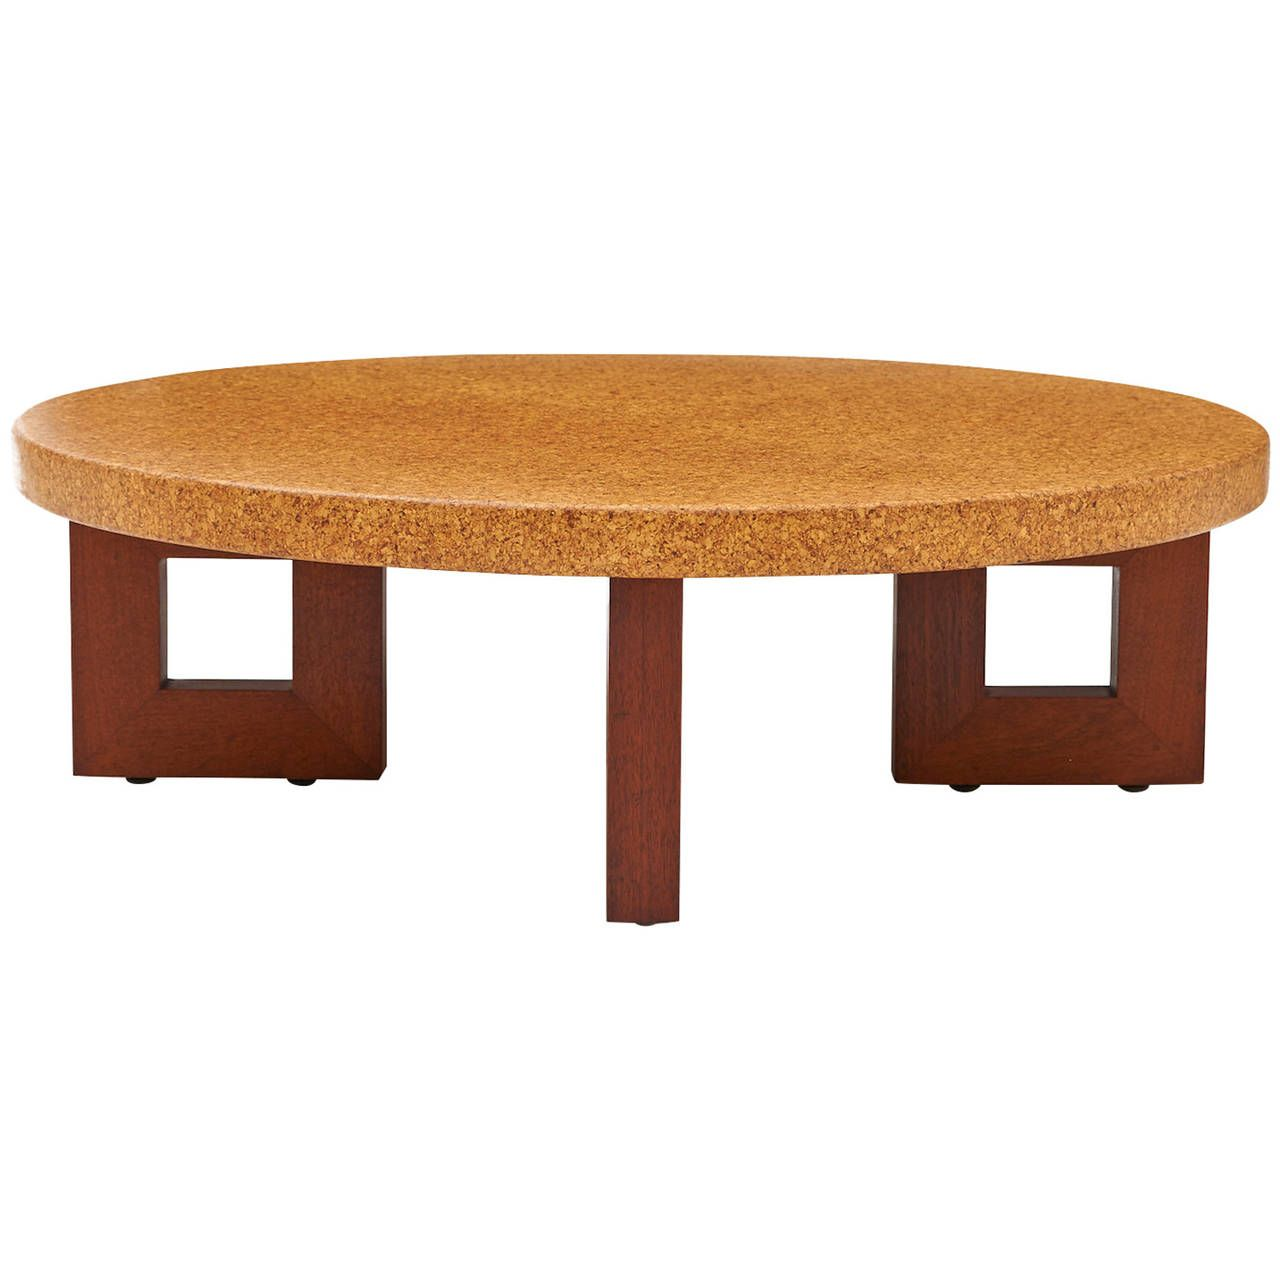 Paul frankl mahogany and cork coffee table for johnson furniture ca